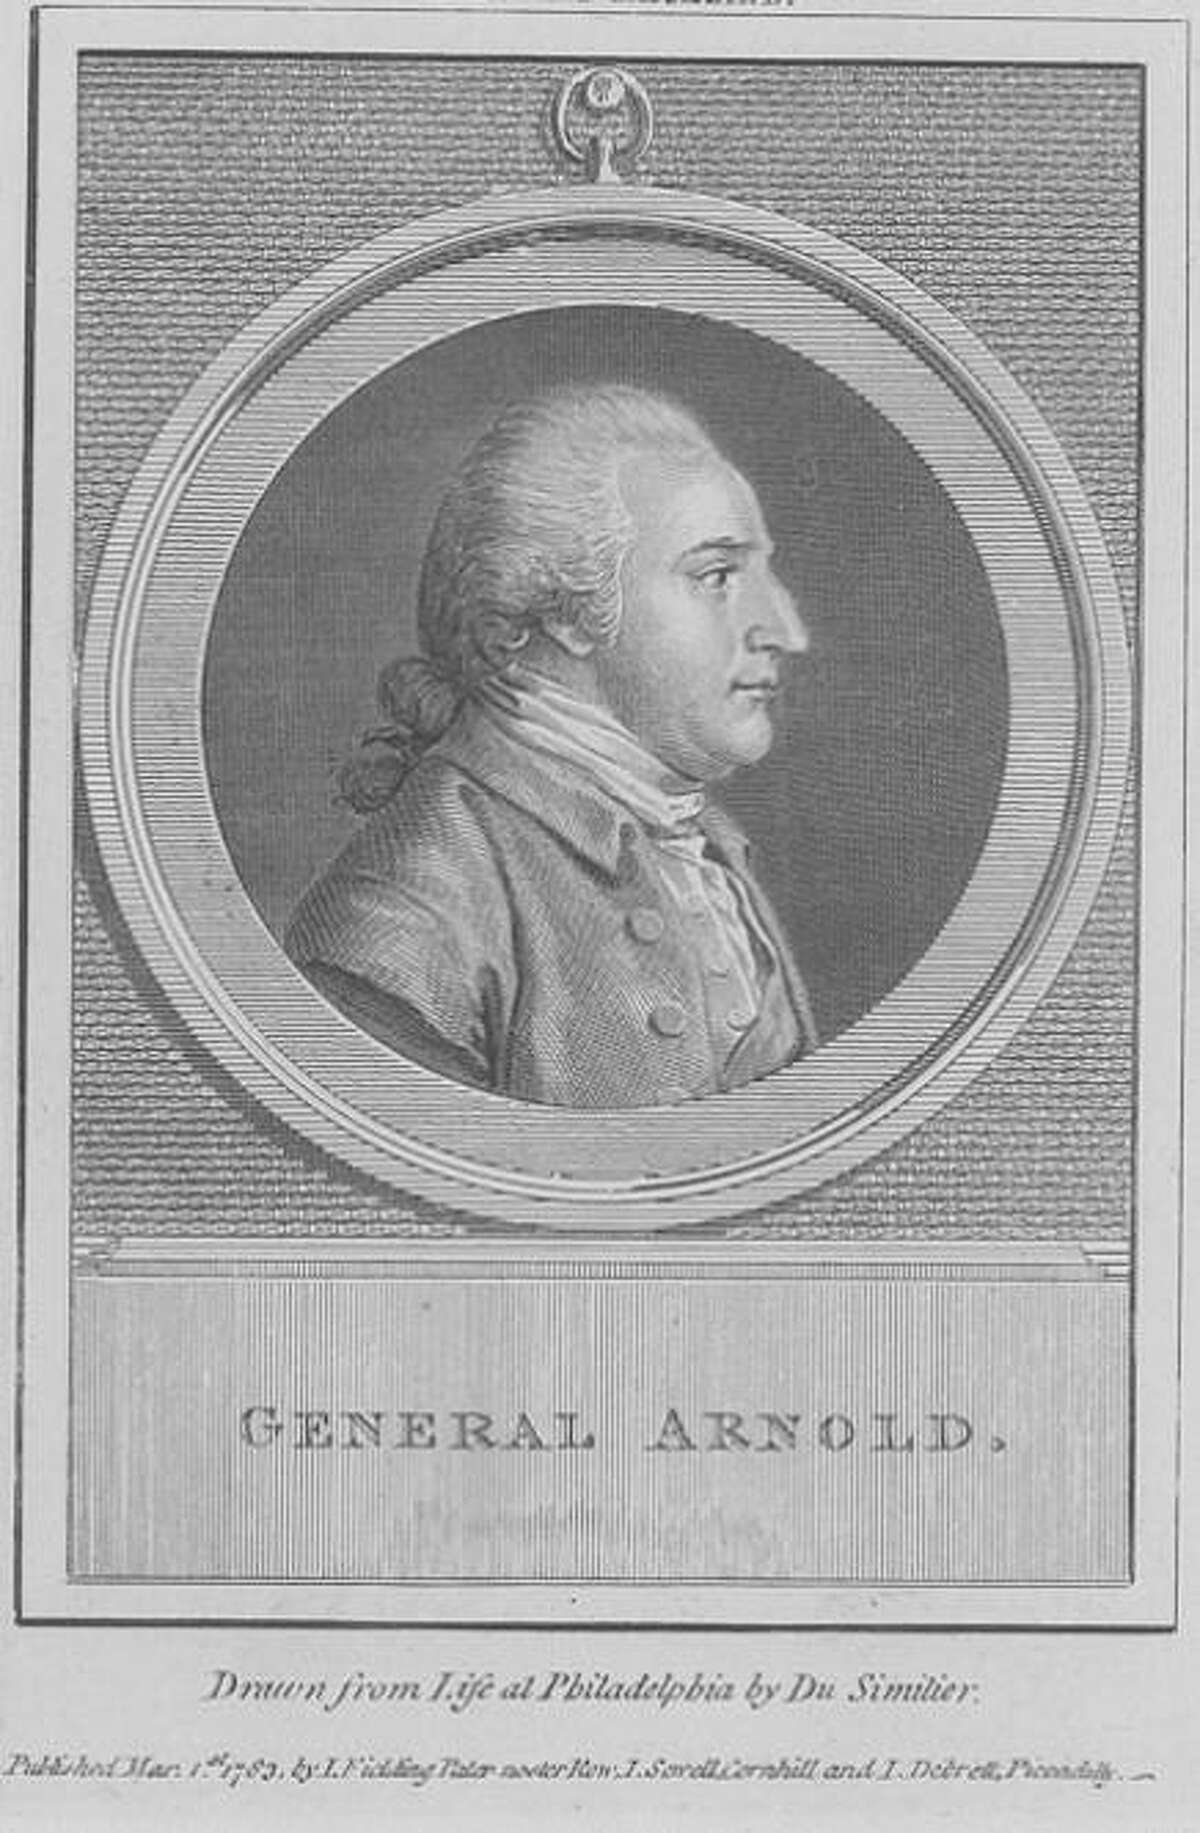 Portrait of General Benedict Arnold. Drawn from life of Philadelphia by Du Simitier.